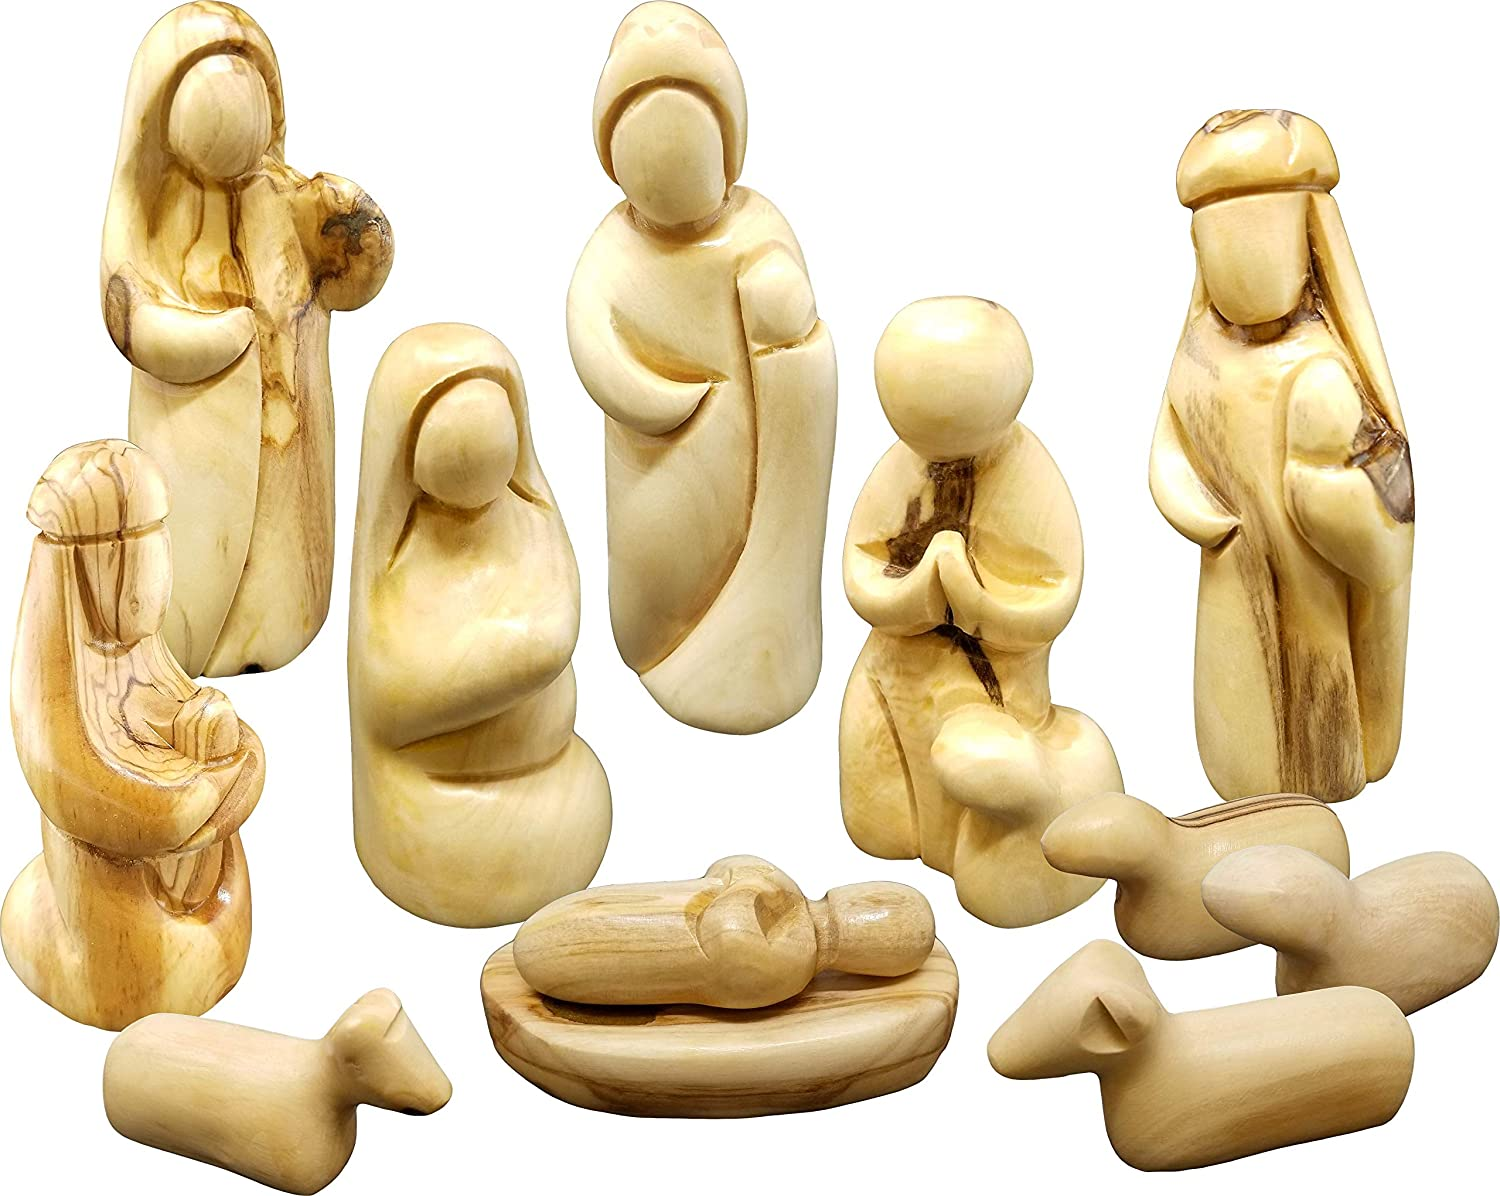 Holy Land Olive Wood Faceless Nativity Set from Israel, 12 Piece Unique Indoor Wooden Nativity Scene, Jesus Mary & Joseph Holy Family in the Manger Figurines, Seasonal Home Décor Accent for Christmas